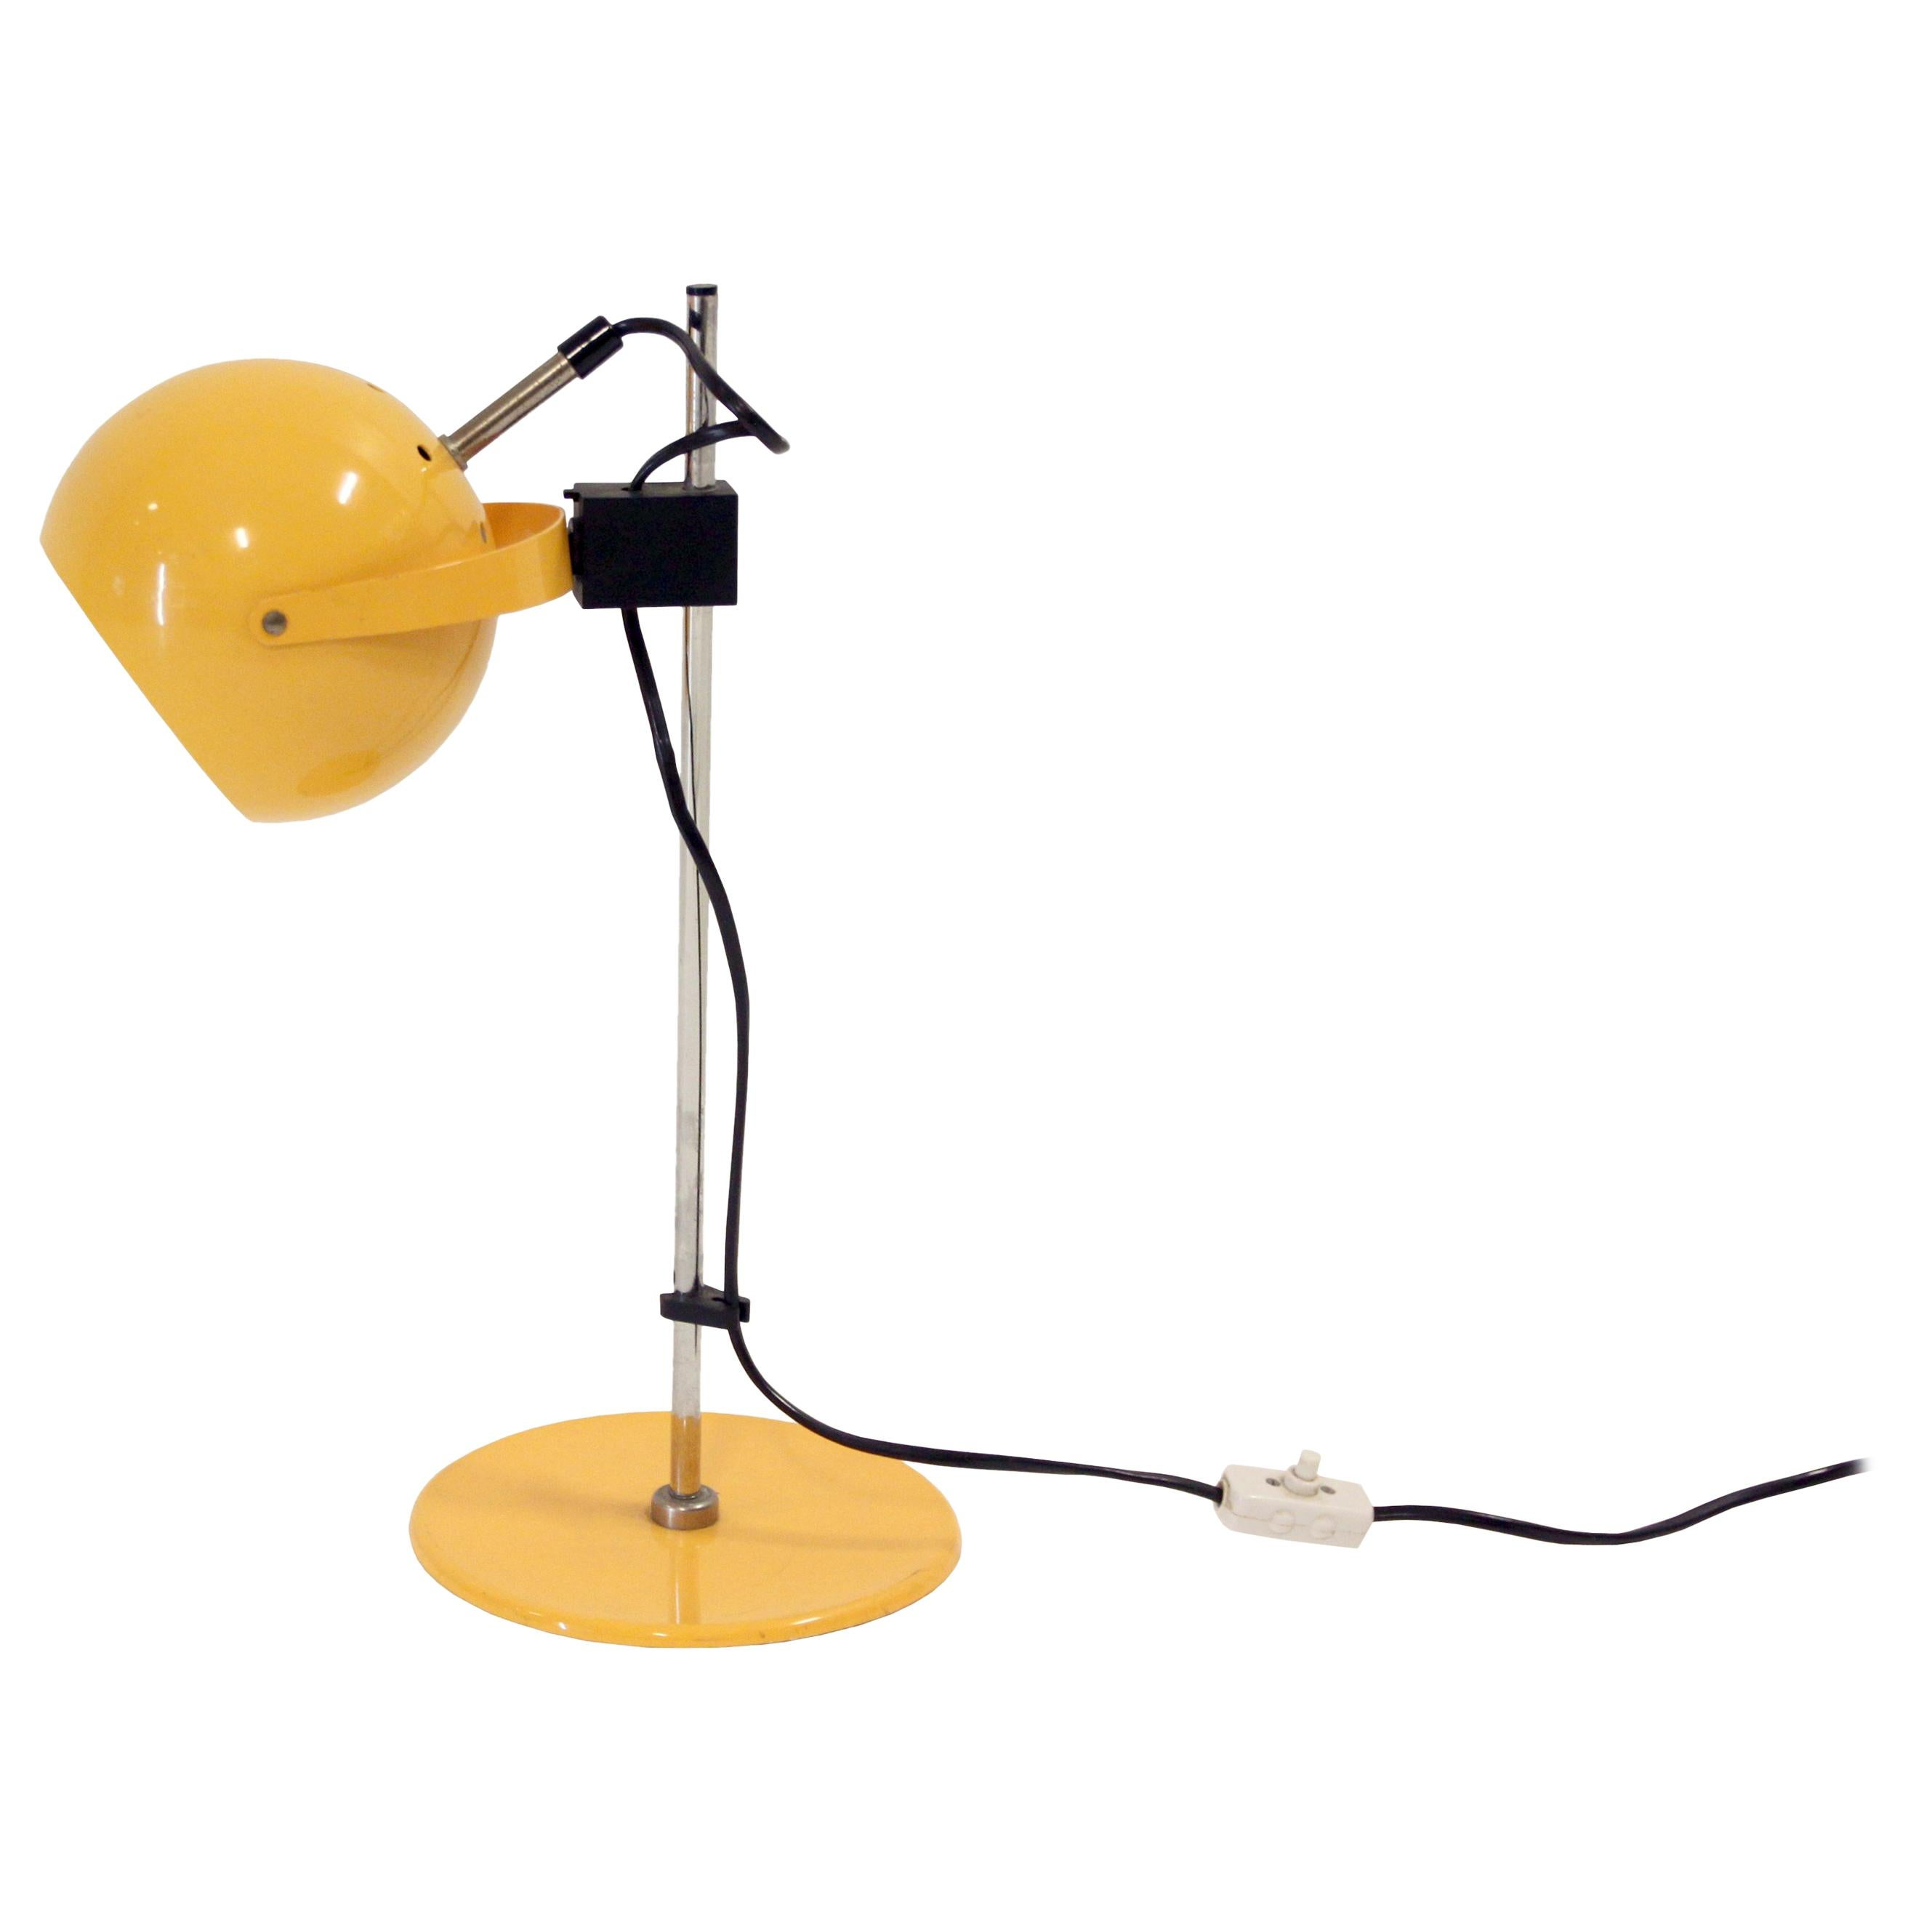 Midcentury Table Lamp, Germany, 1970s